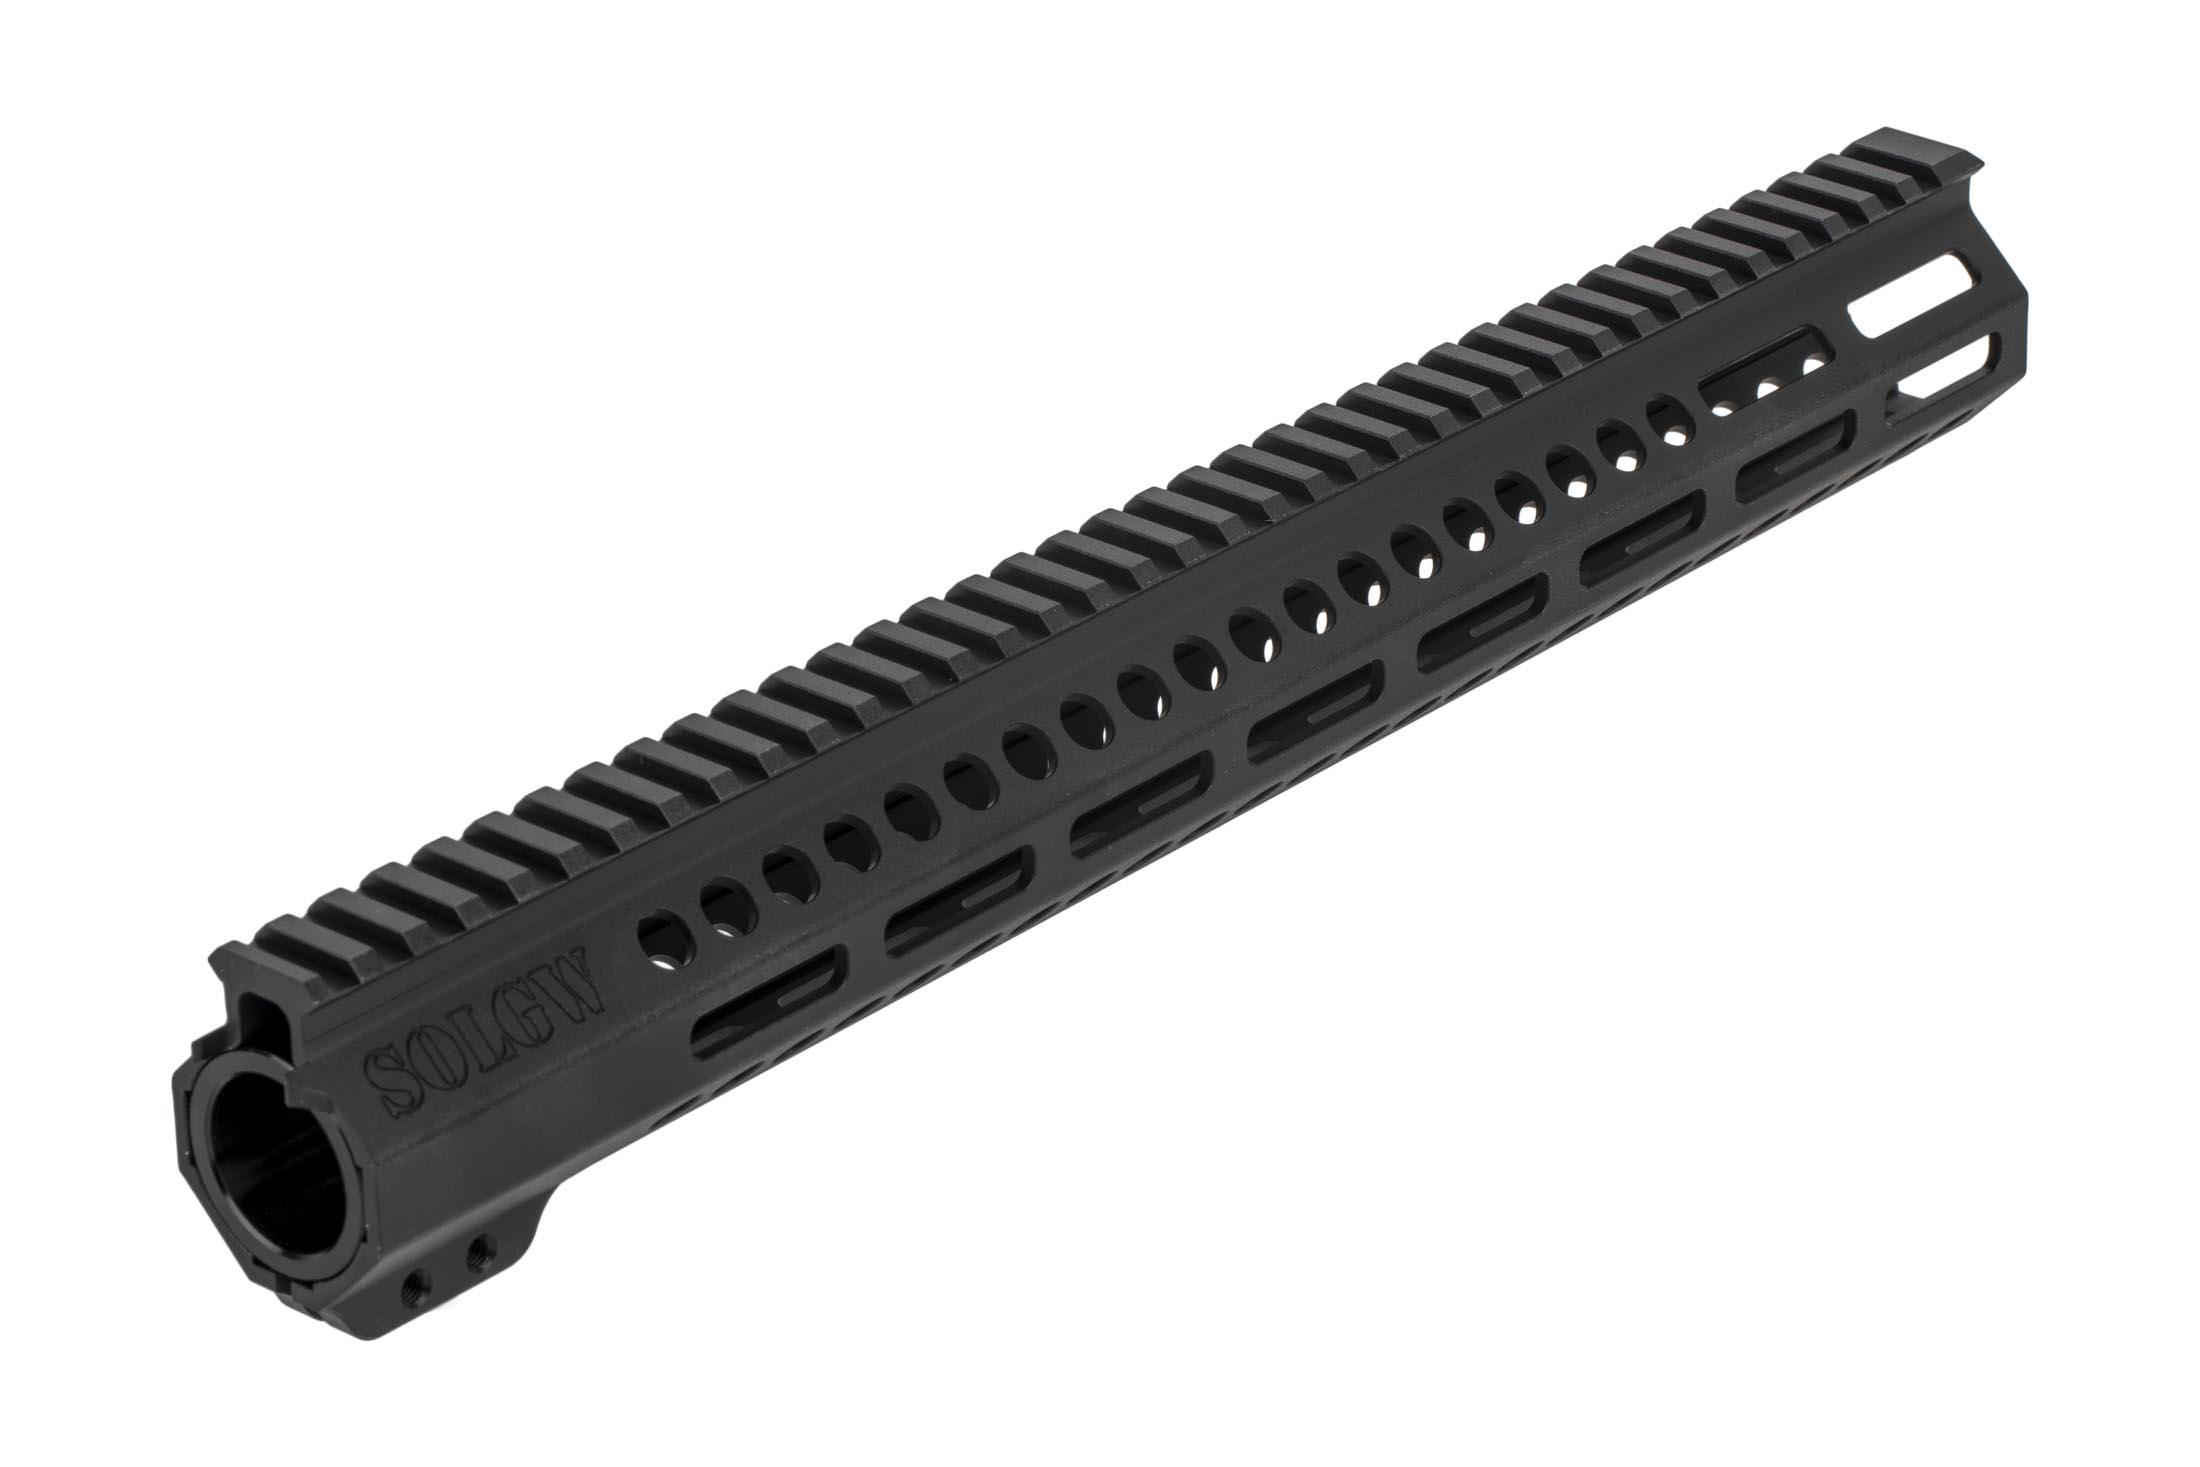 SOLGW 15in EXO 2 freefloat AR-15 handgaurd features dual anti-rotation tabs for secure installation